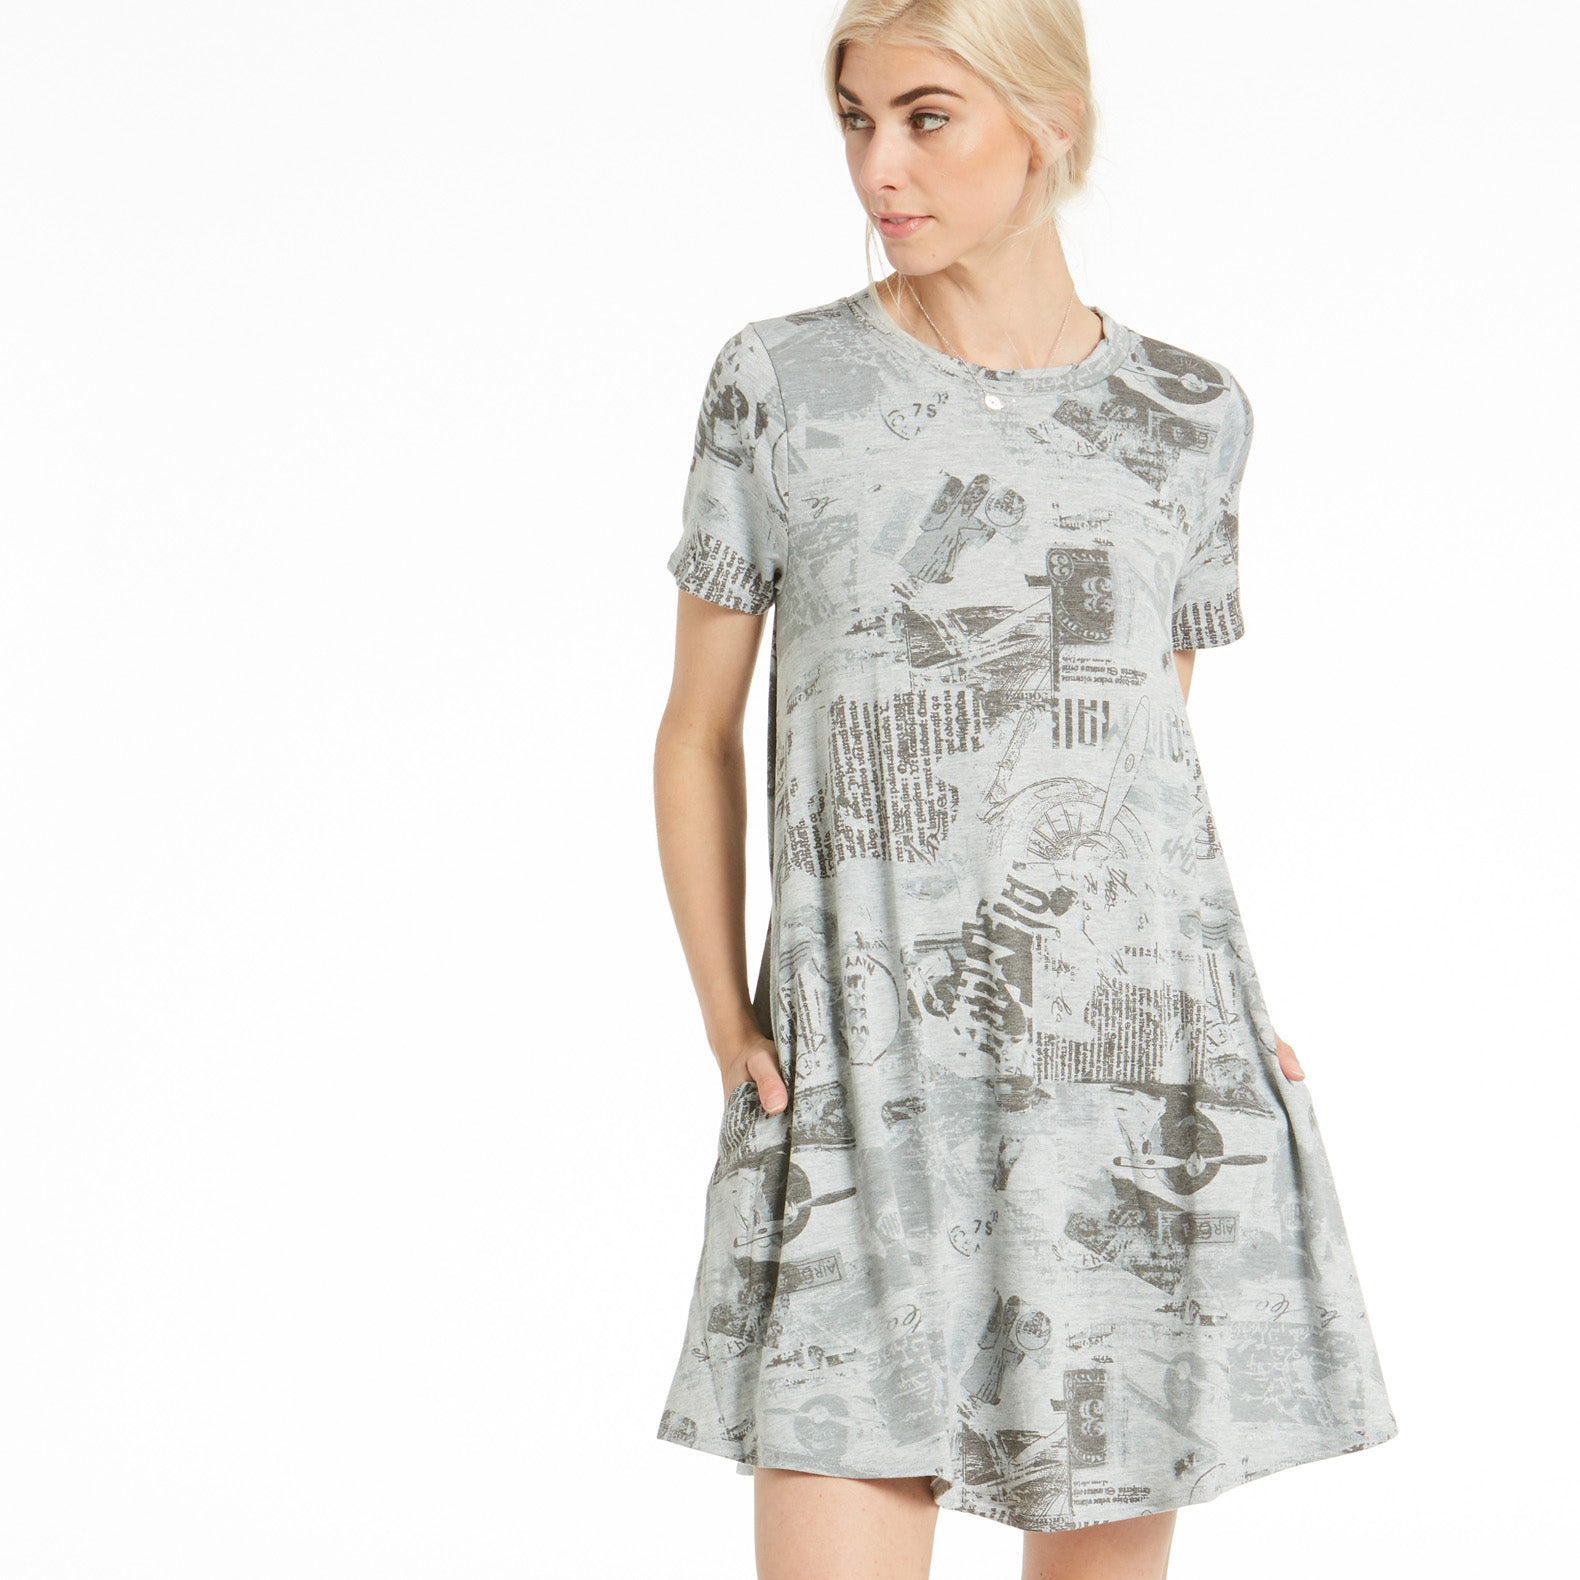 Old World New Discovery Dress